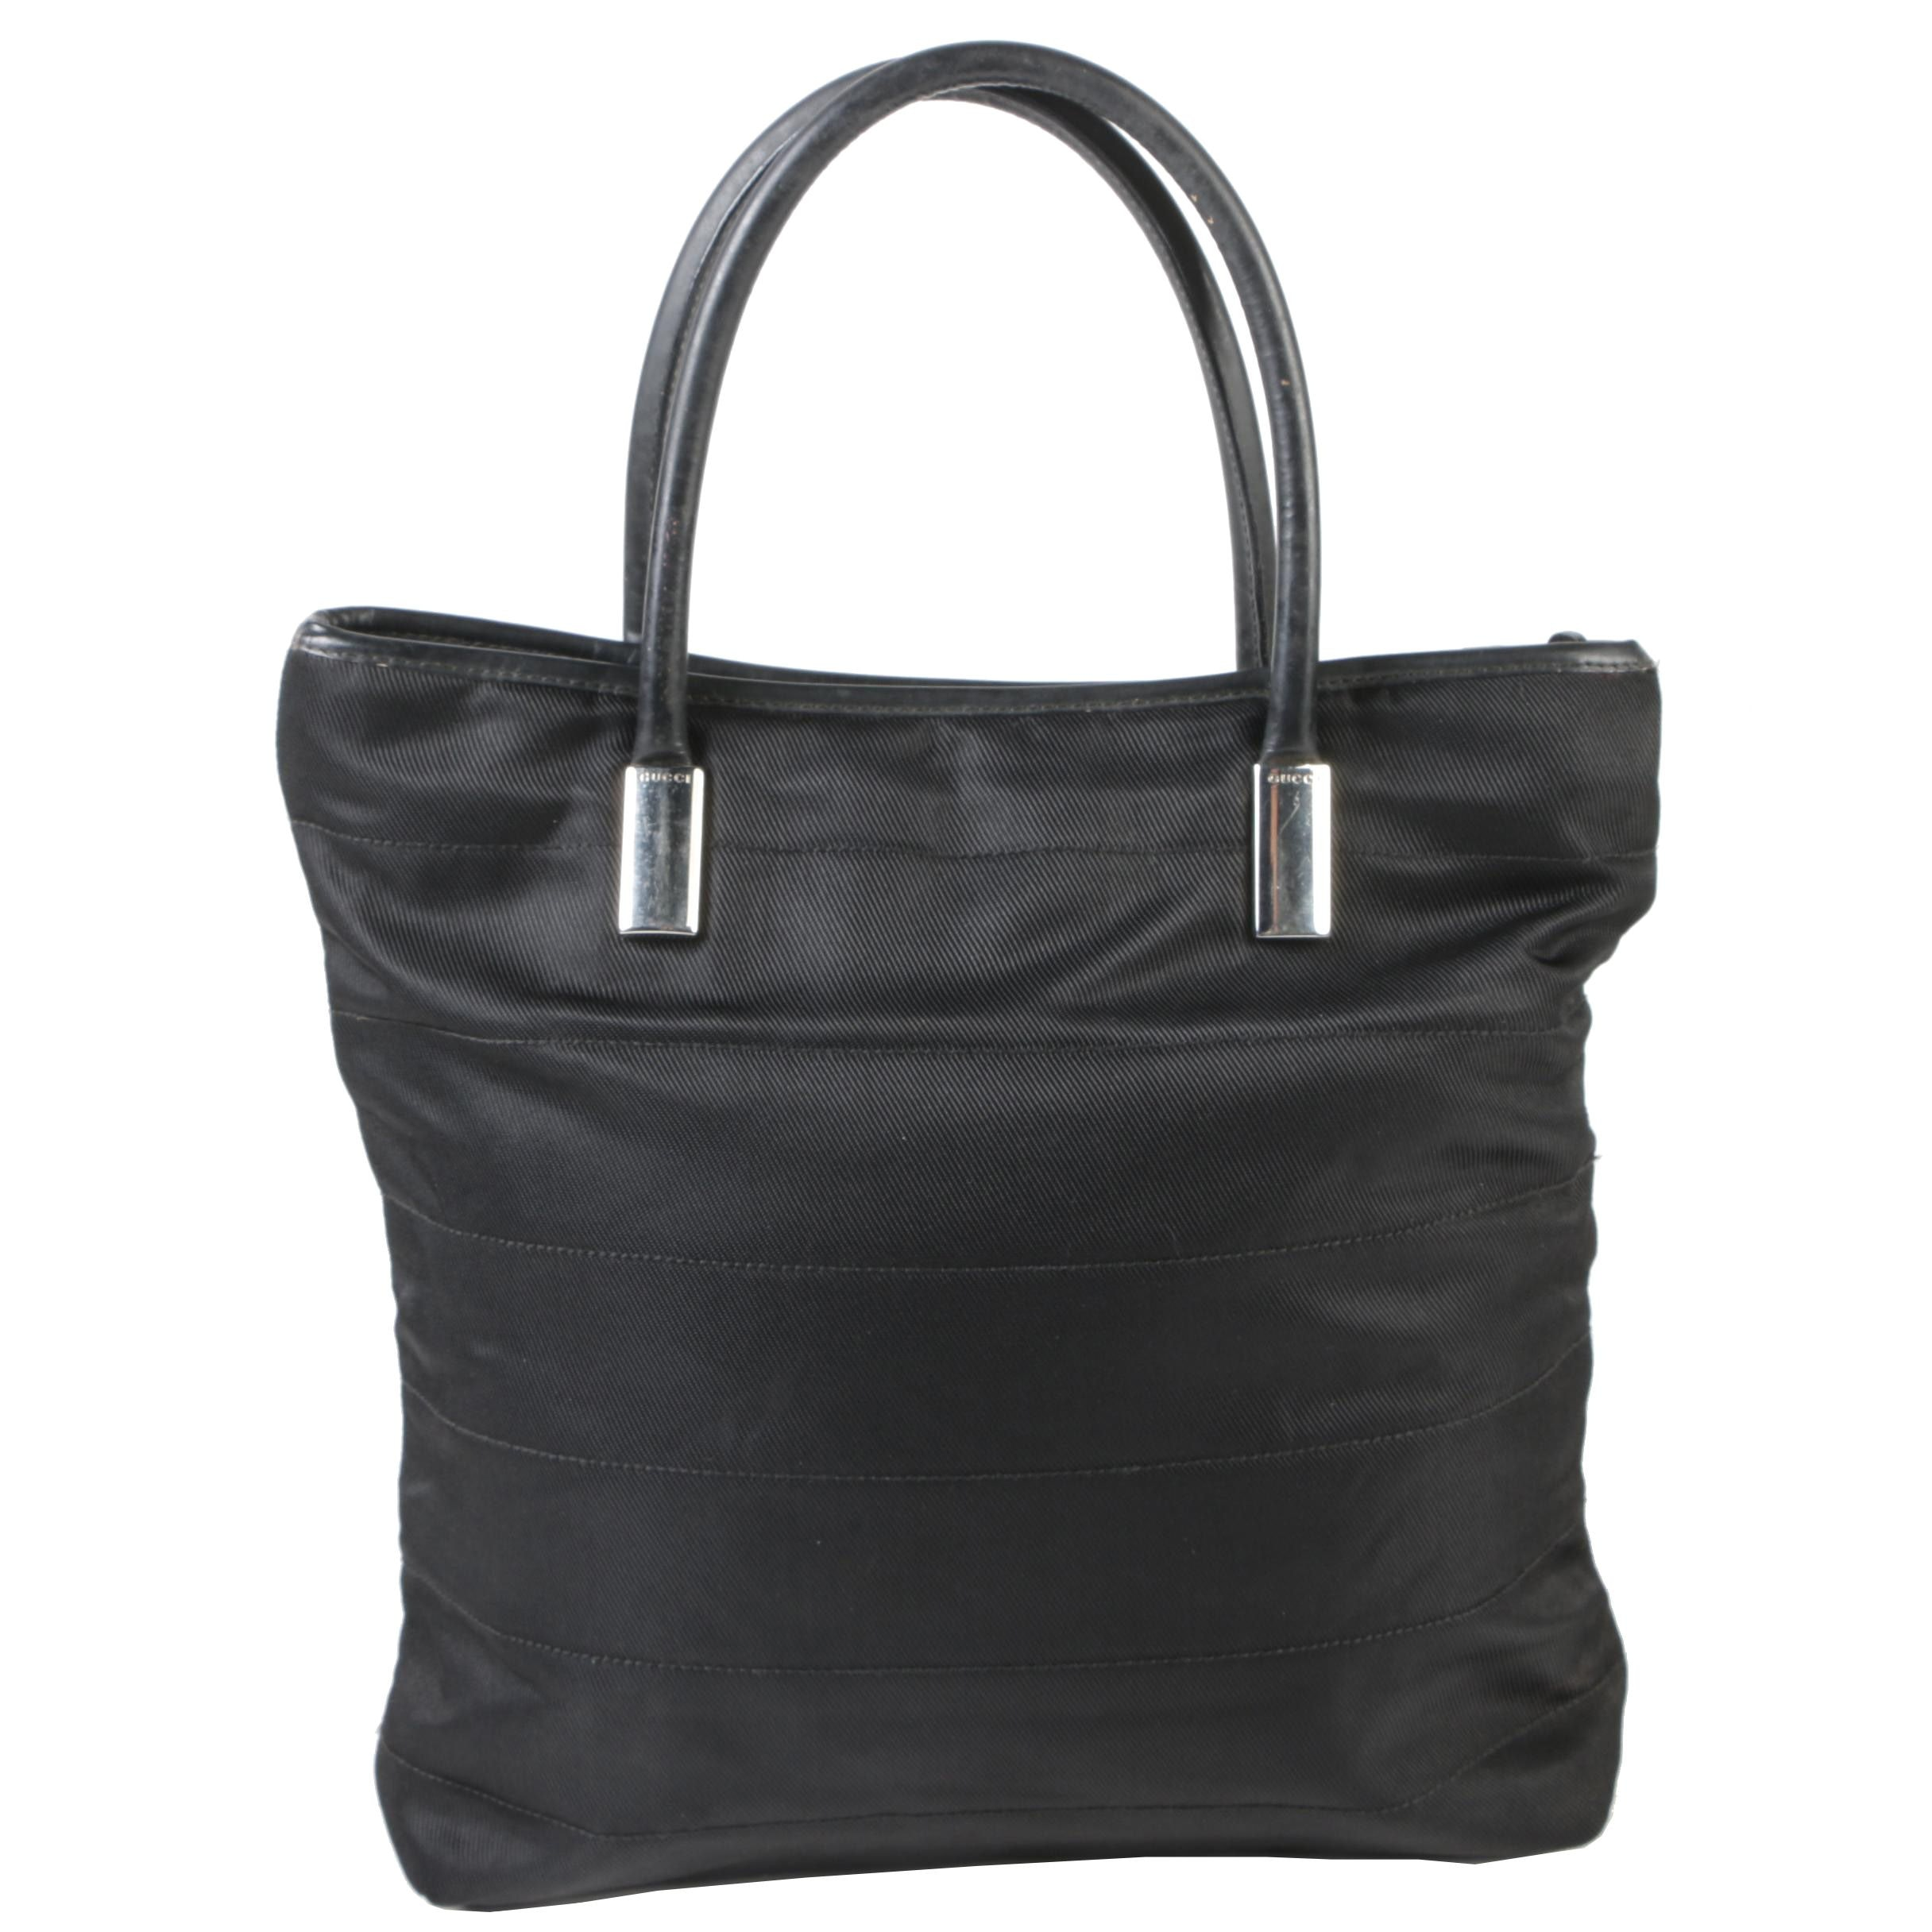 Gucci Black Nylon and Leather North South Shoulder Tote